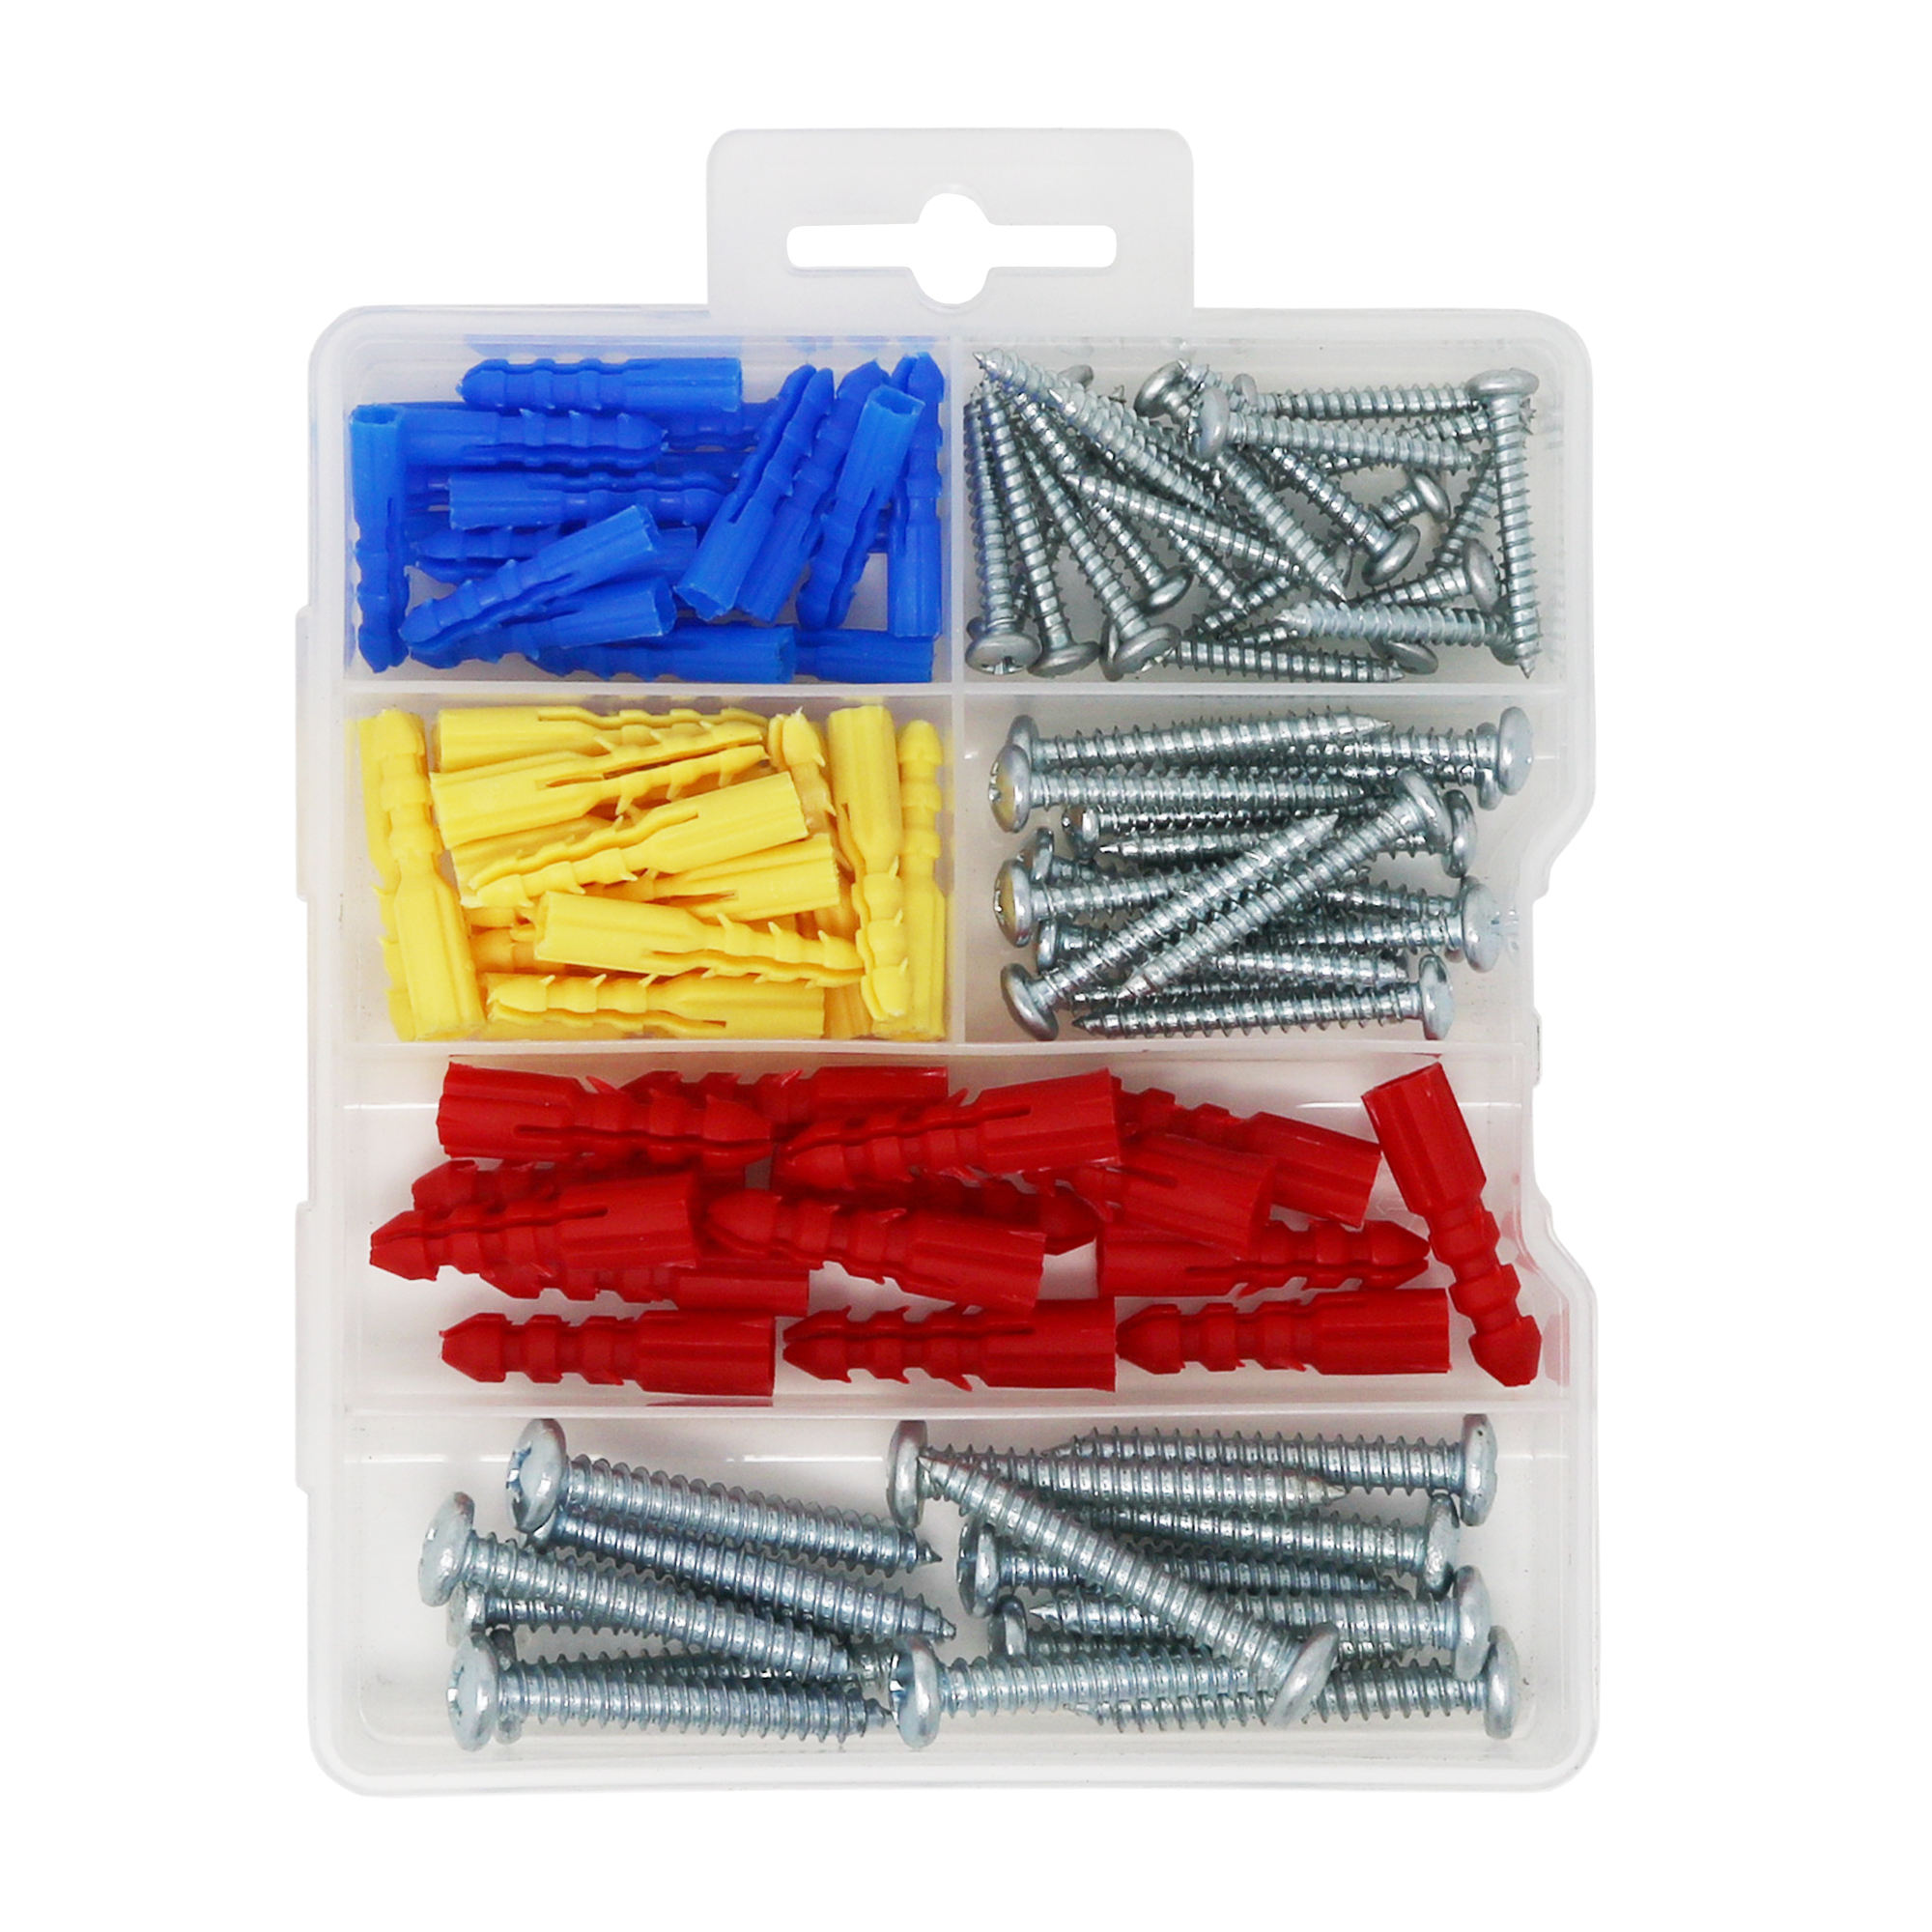 Factory direct supply PP material resistant to rust Ribbed drywall Anchors easily Self-Tapping Screws assortment